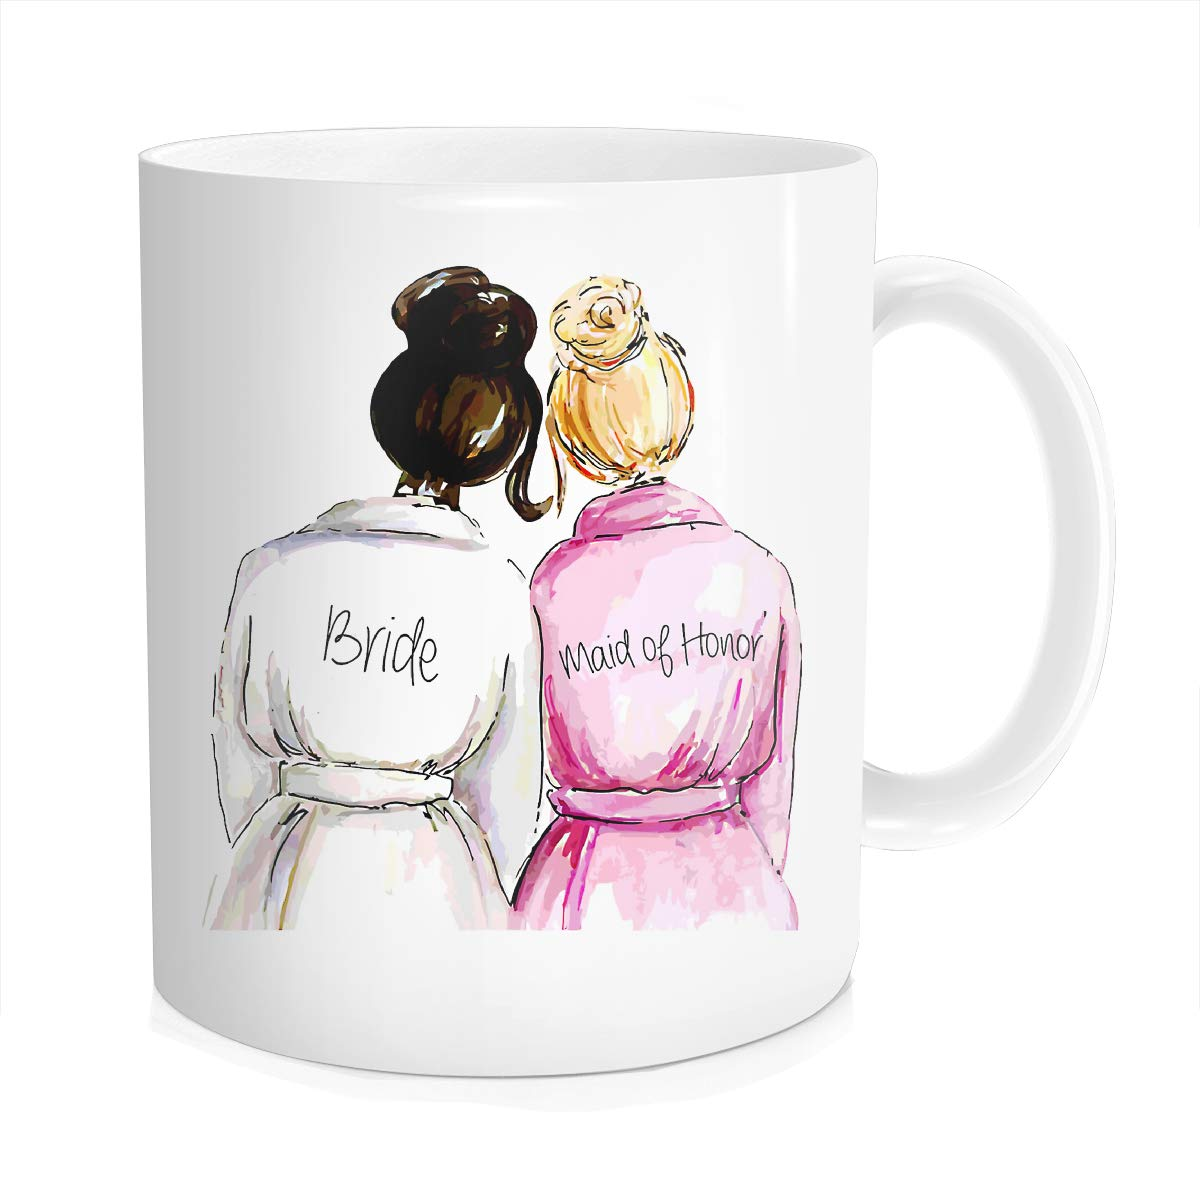 Bridesmaid Thermal Bride Bestie Bride Gift For Wedding Day From